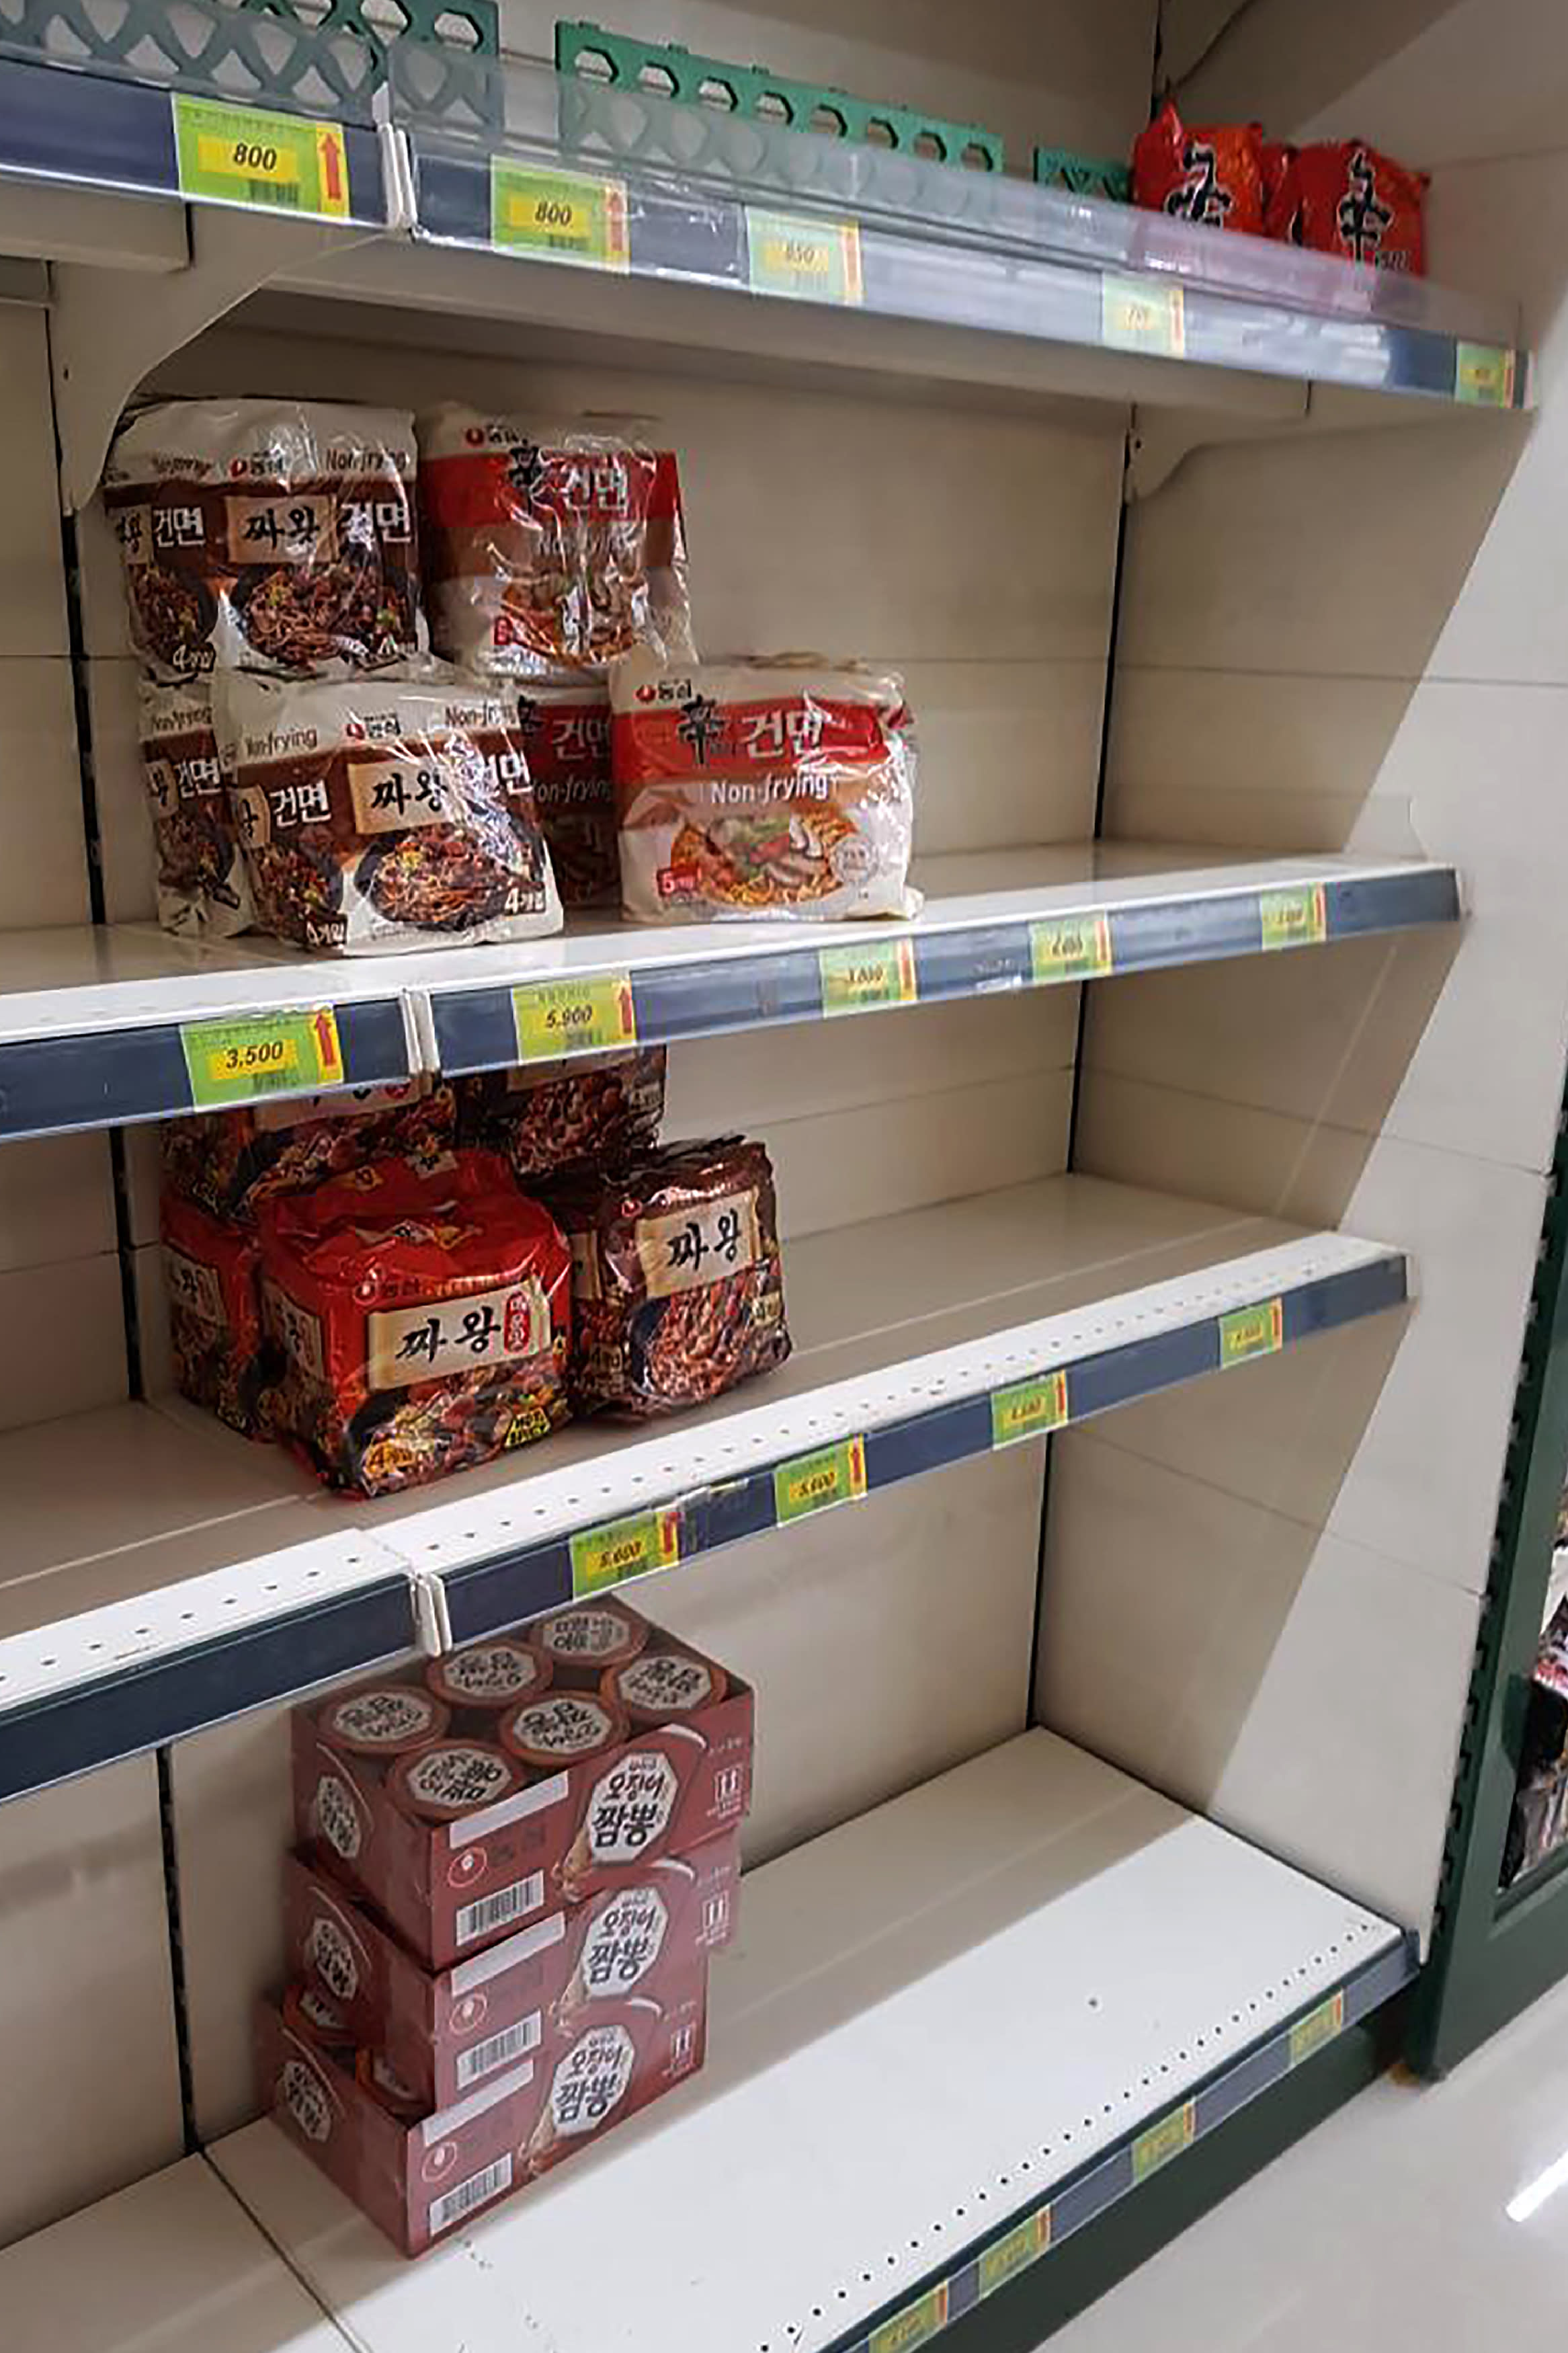 FILE - In this Feb. 21, 2020 file photo, Packages of instant noodles are displayed on almost empty shelves at a supermarket in Daegu, South Korea. As fears of a soaring viral outbreak grip the southeastern South Korean city of Daegu and nearby areas, many residents are struggling as they try to avoid the new virus. (AP Photo/Noh Yeo Jin, File)